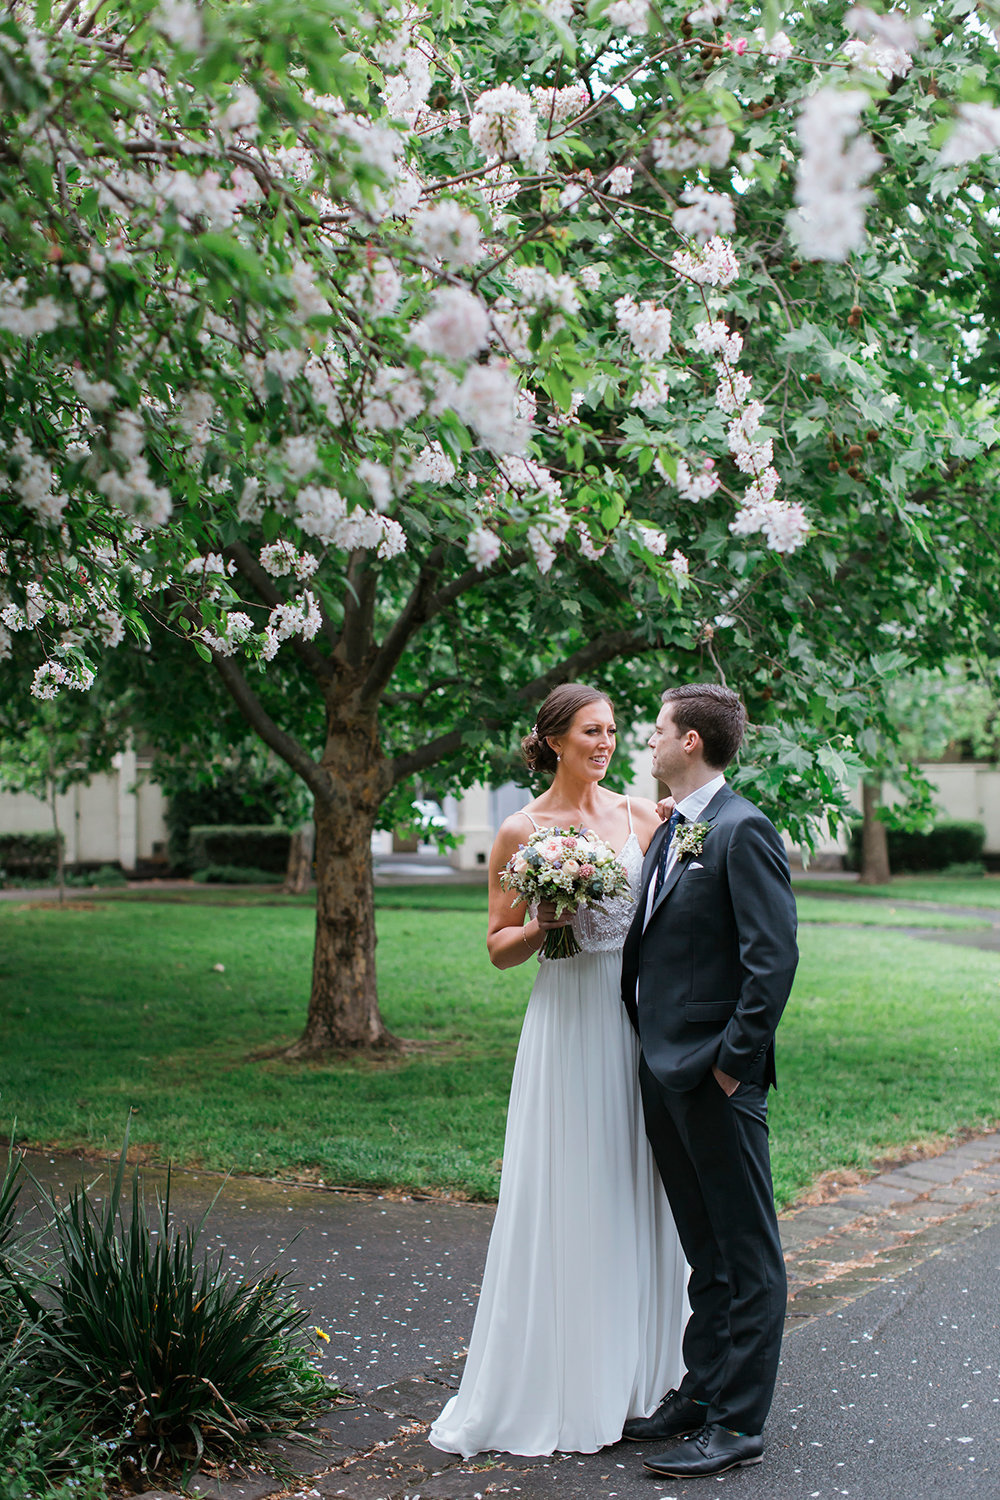 Melbourne Wedding Photographer Monika Berry